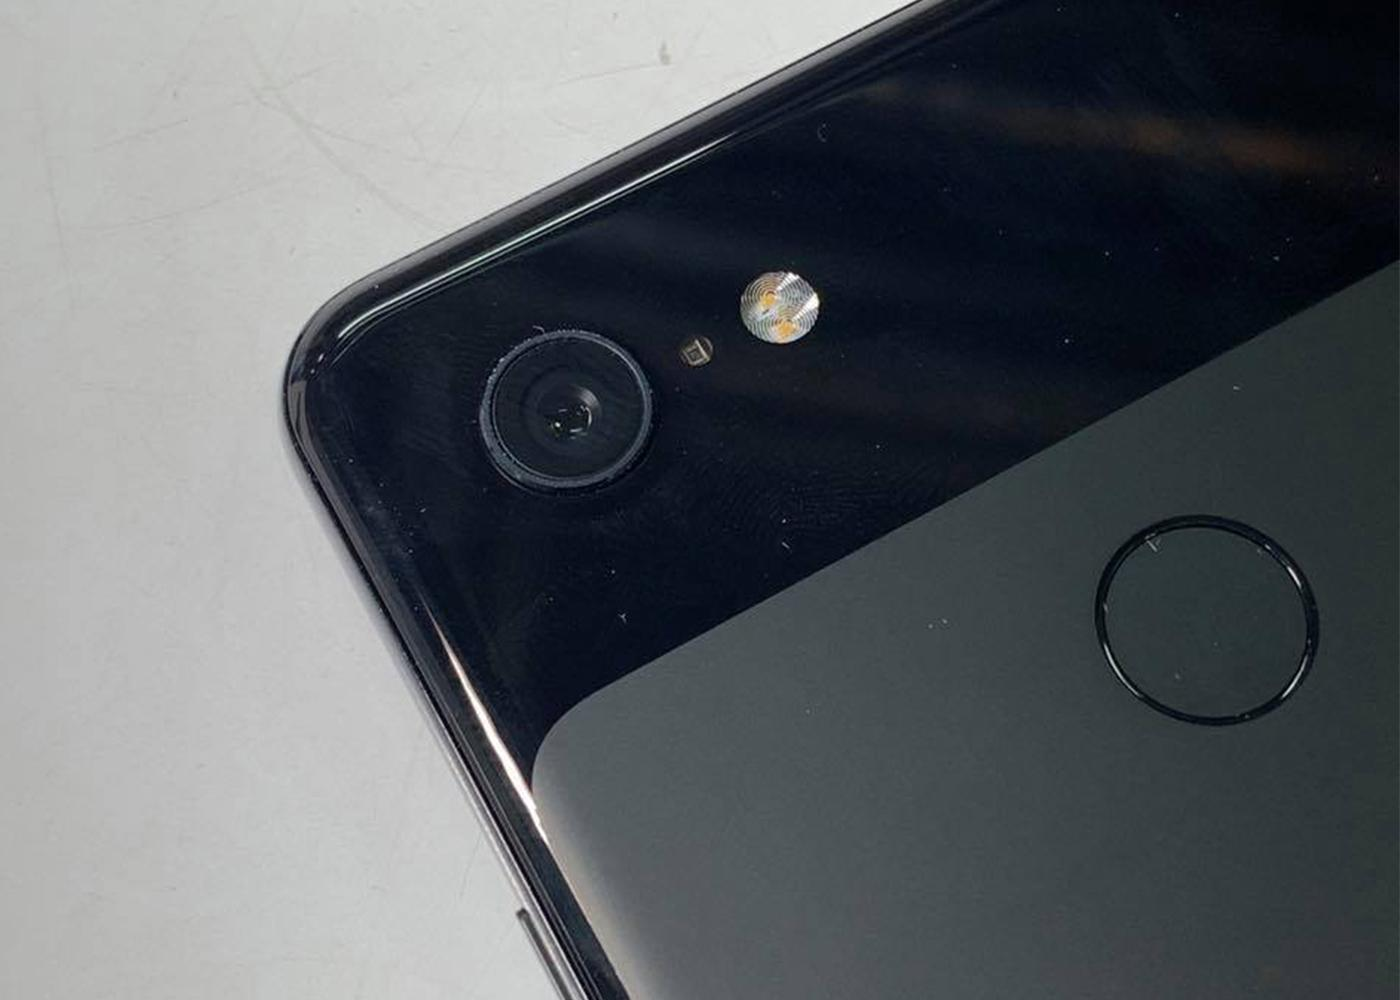 The Pixel 3a would start from USD $ 399, challenging the throne of the mid-range 3